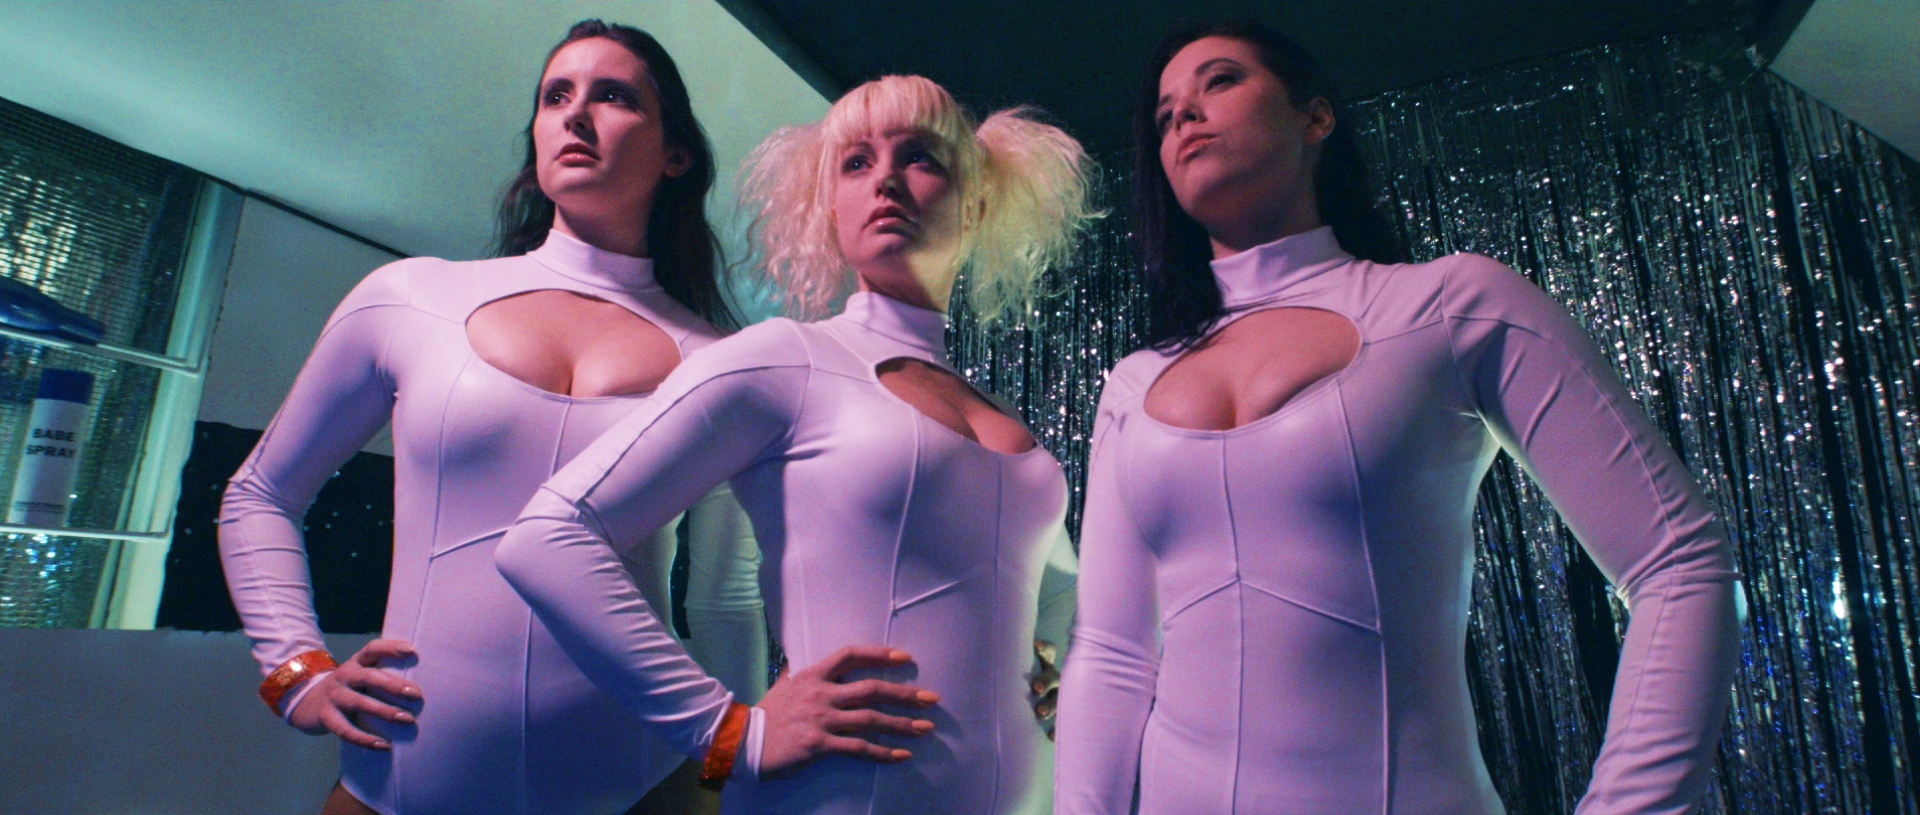 Talking Sex with Space Babes from Outer Space Director, Brian K. Williams